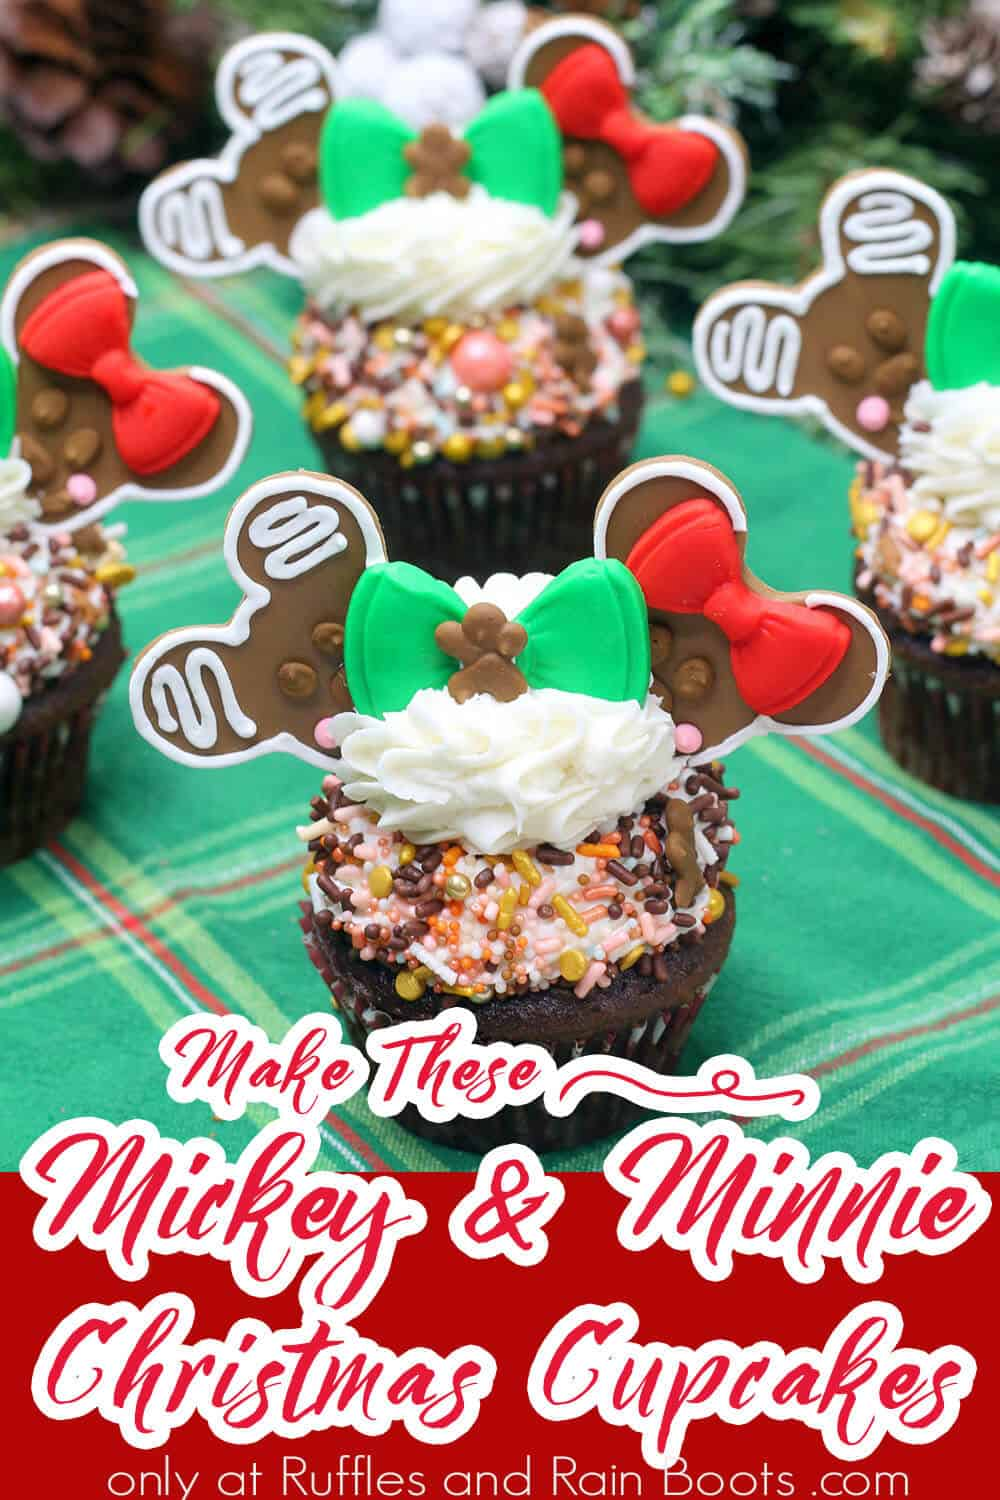 mickey and minnie gingerbread christmas cupcakes with text which reads make these mickey and minnie christmas cupcakes